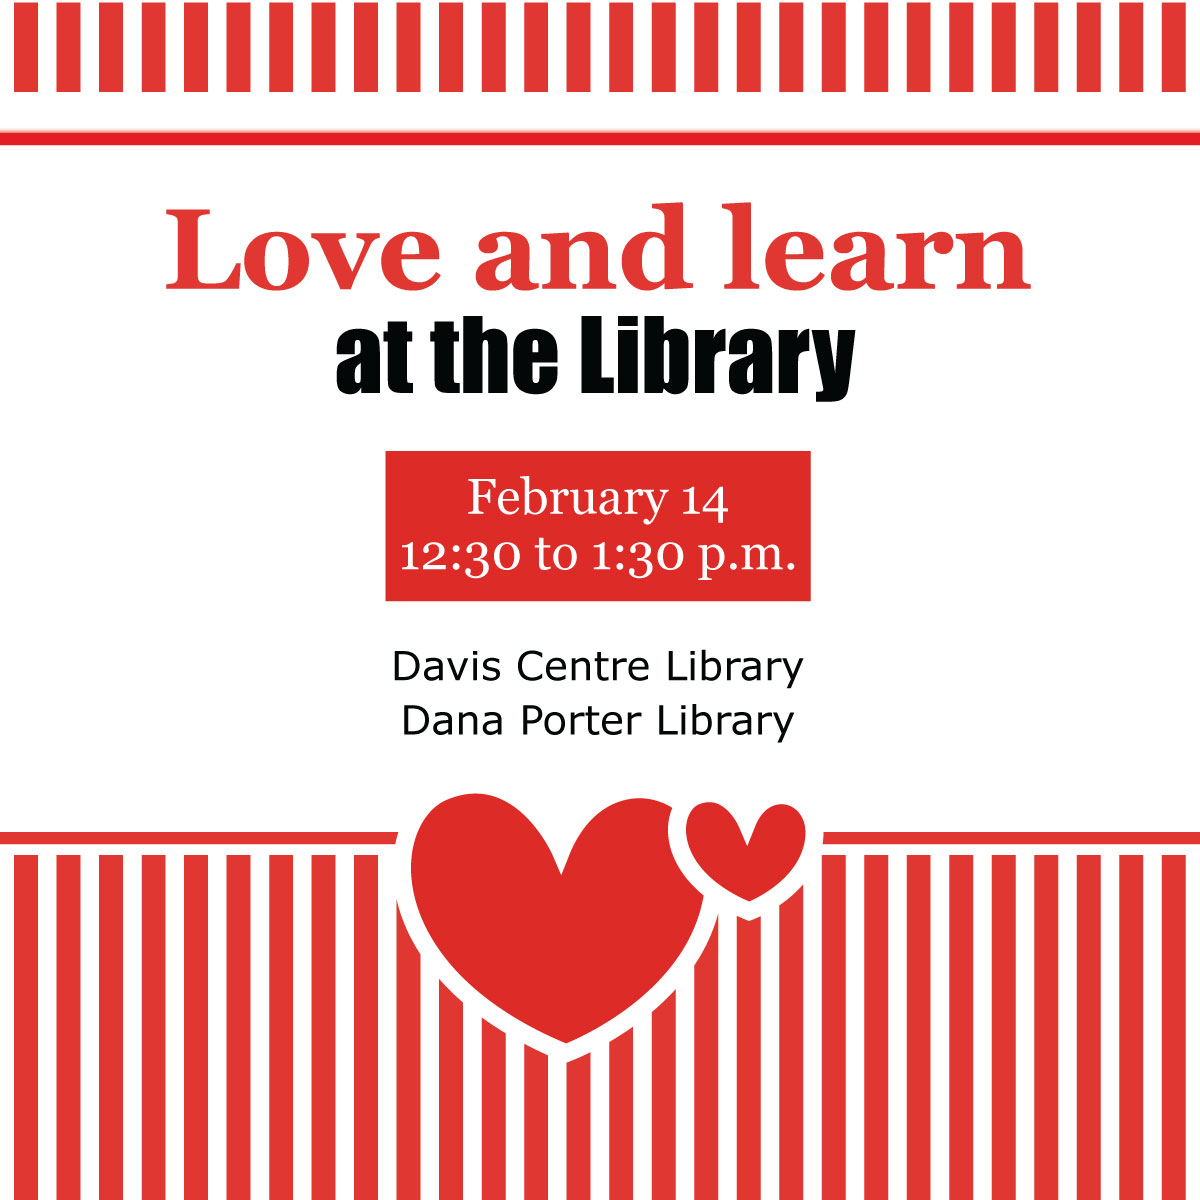 Love and learn at the Library